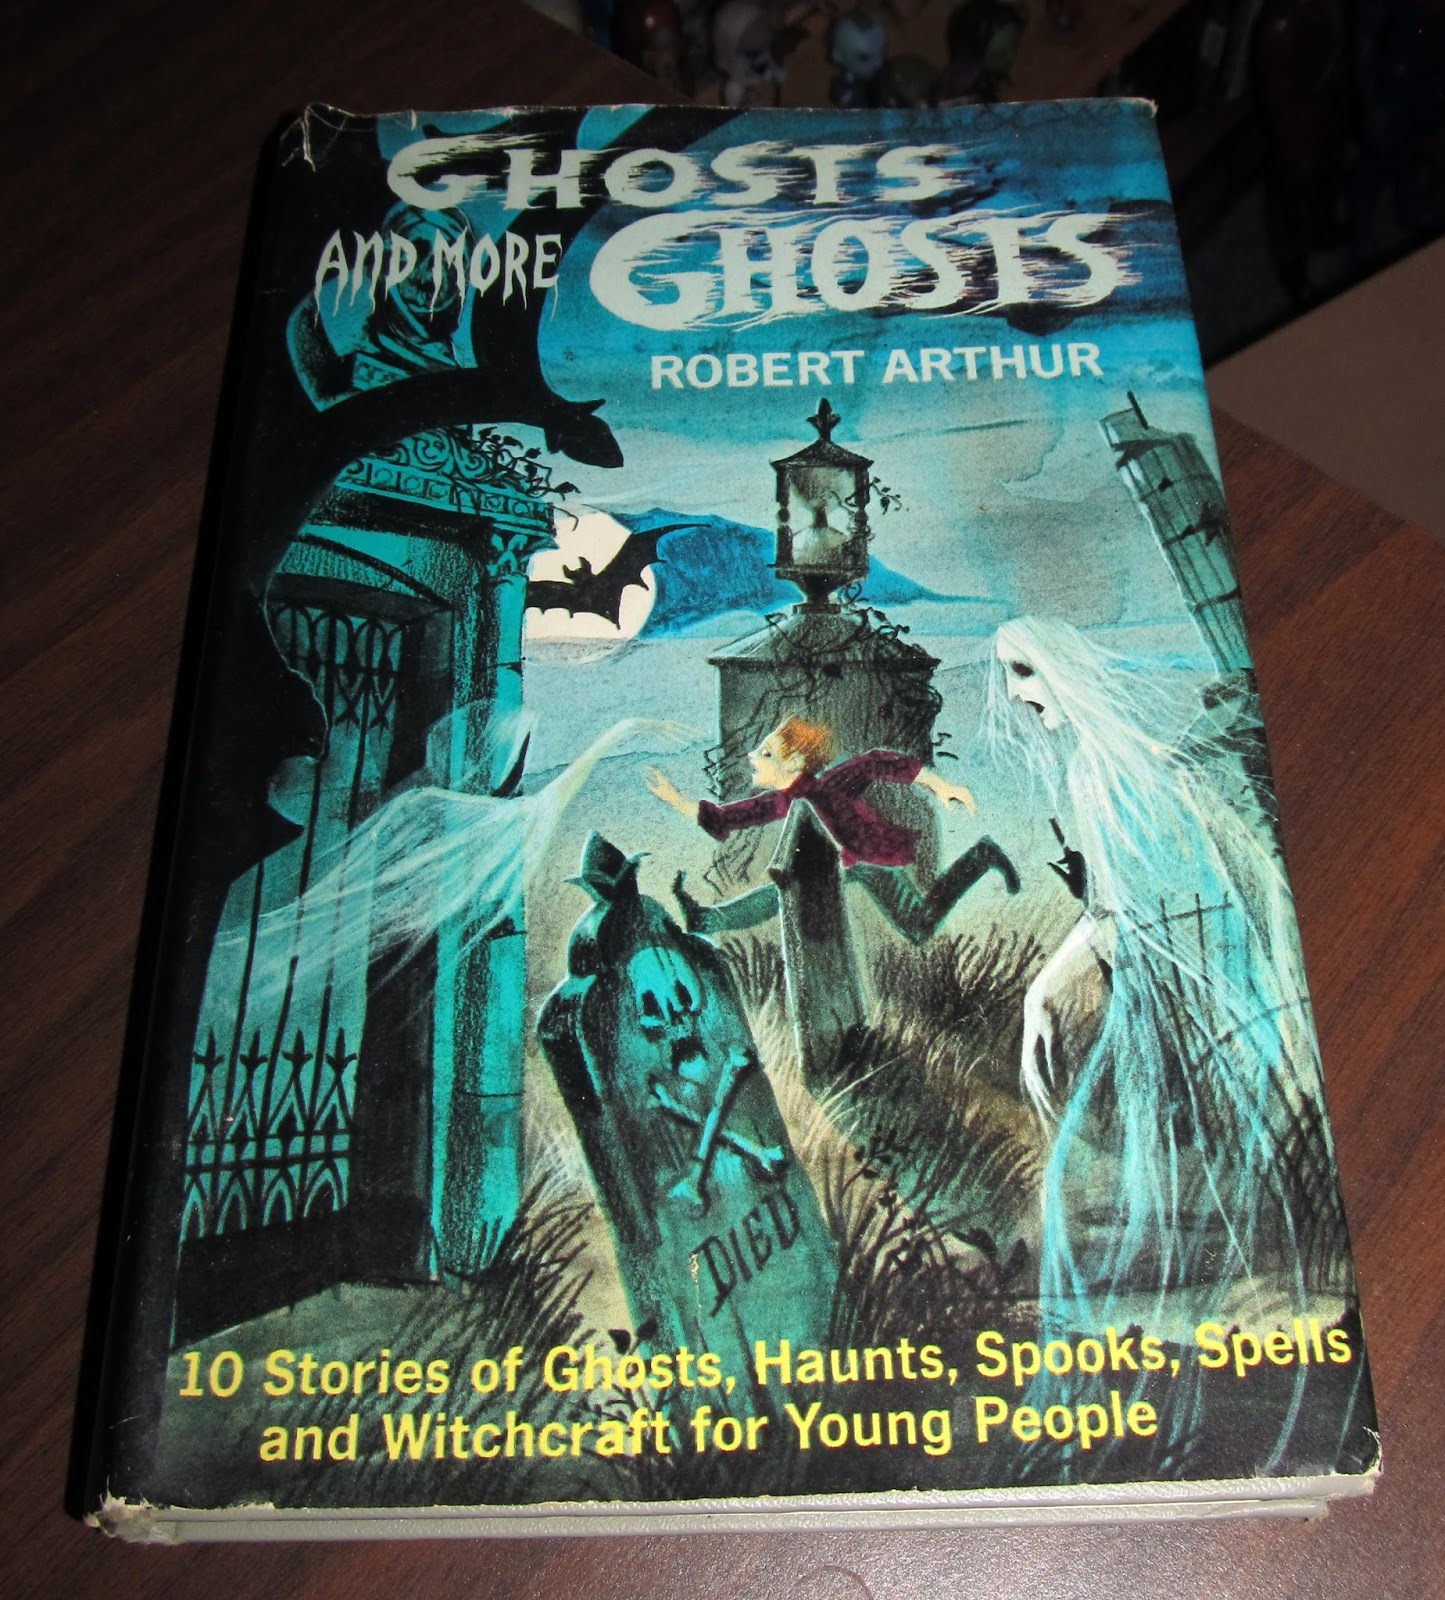 when i picked up robert arthurs ghosts and more ghosts at goodwill a few months back i immediately knew it was going in the halloween read pile